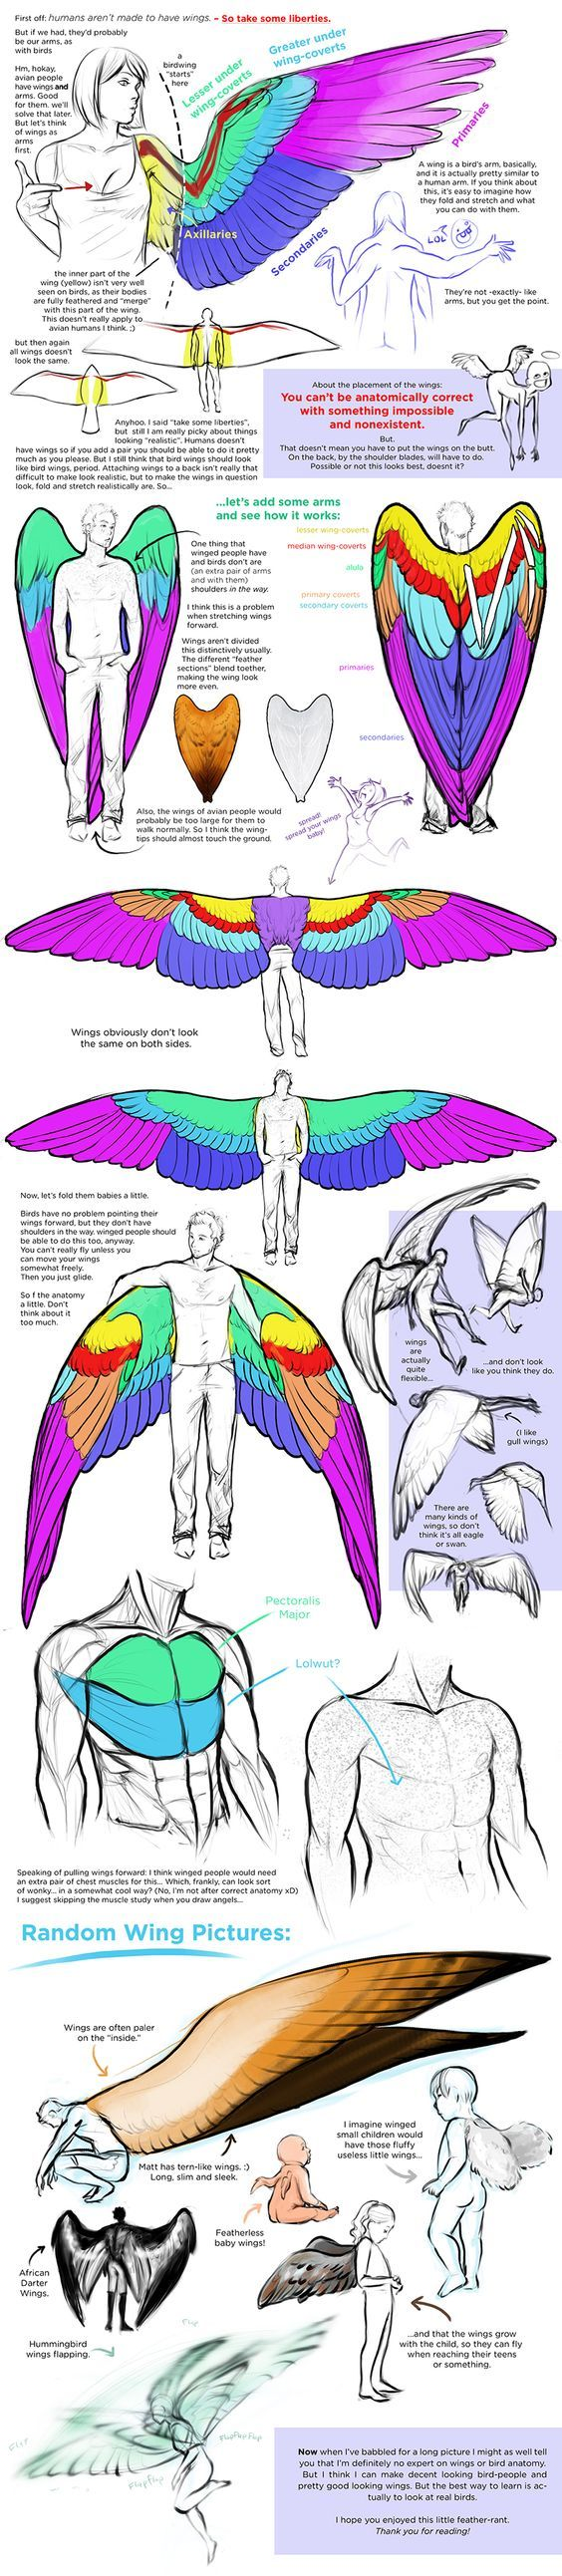 This is a good explaination of the correct anatomy of wings on people. Technically, winged people shouldn't have arms.: